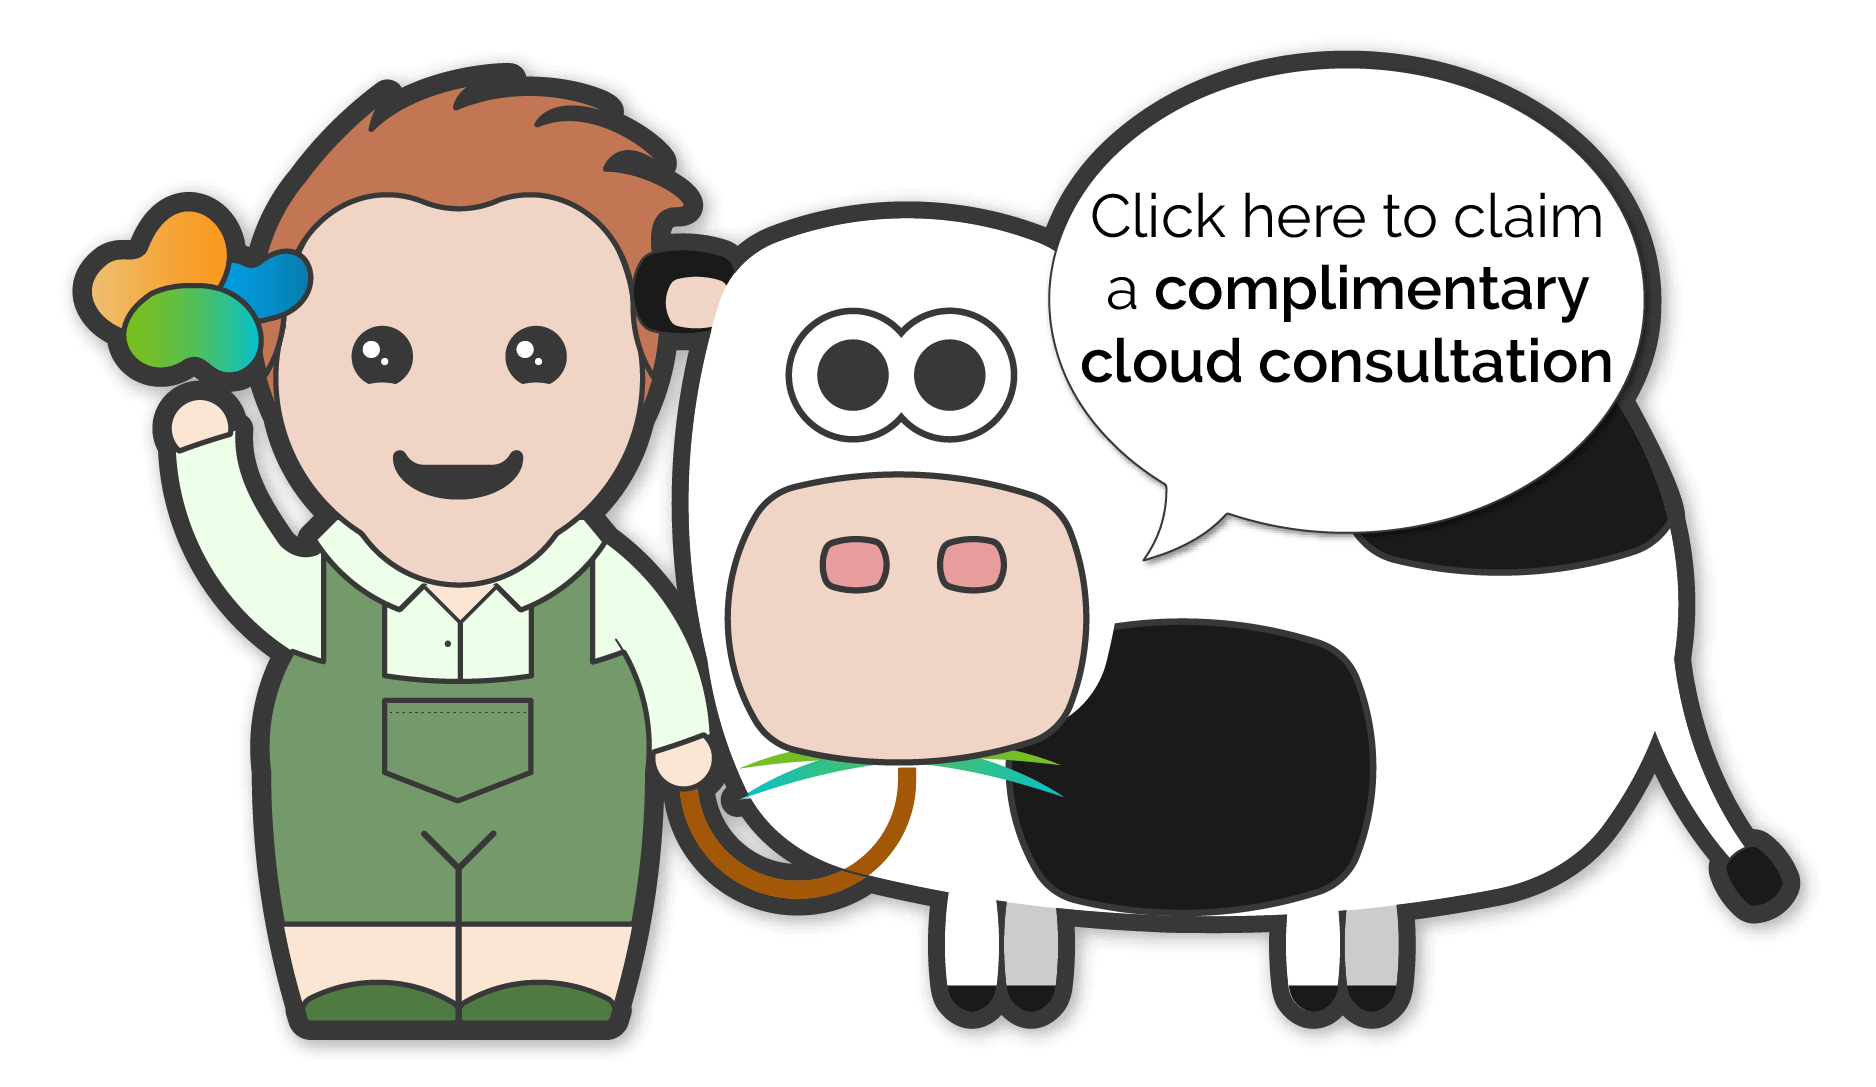 Click here for a complimentary cloud consultation